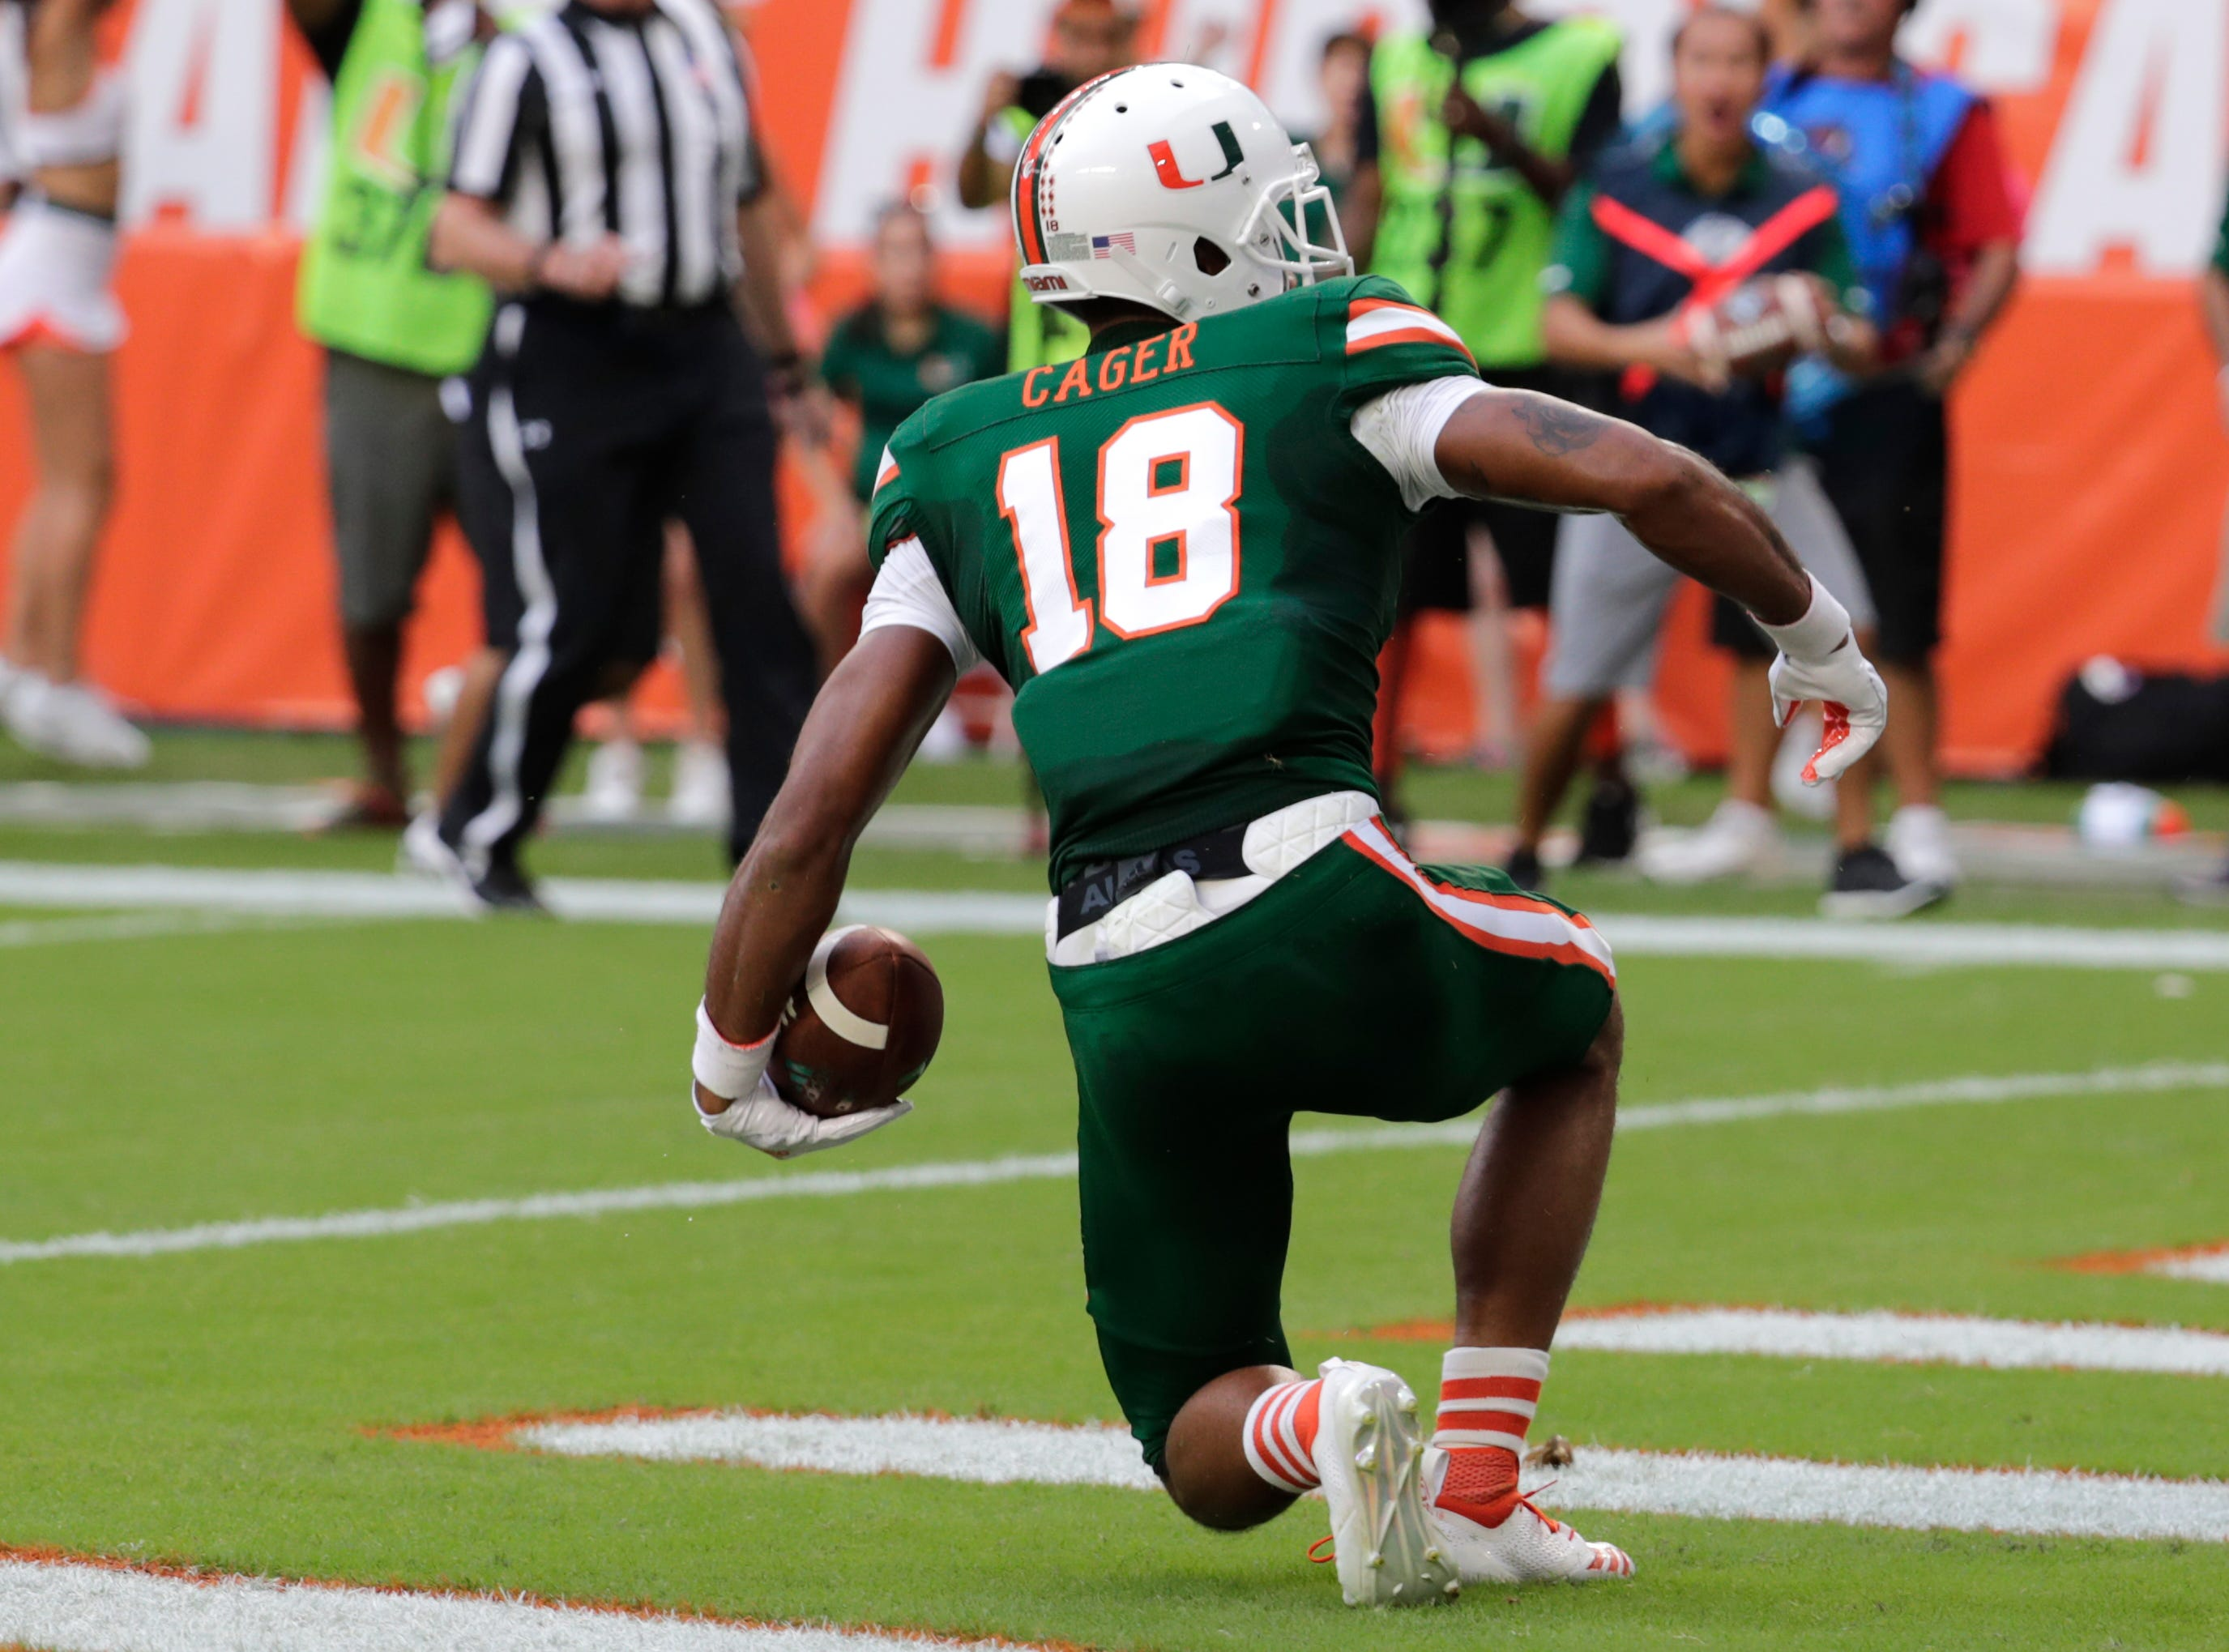 Miami wide receiver Lawrence Cager (18) scores a touchdown during the first half of an NCAA college football game against Florida State, Saturday, Oct. 6, 2018, in Miami Gardens, Fla. (AP Photo/Lynne Sladky)